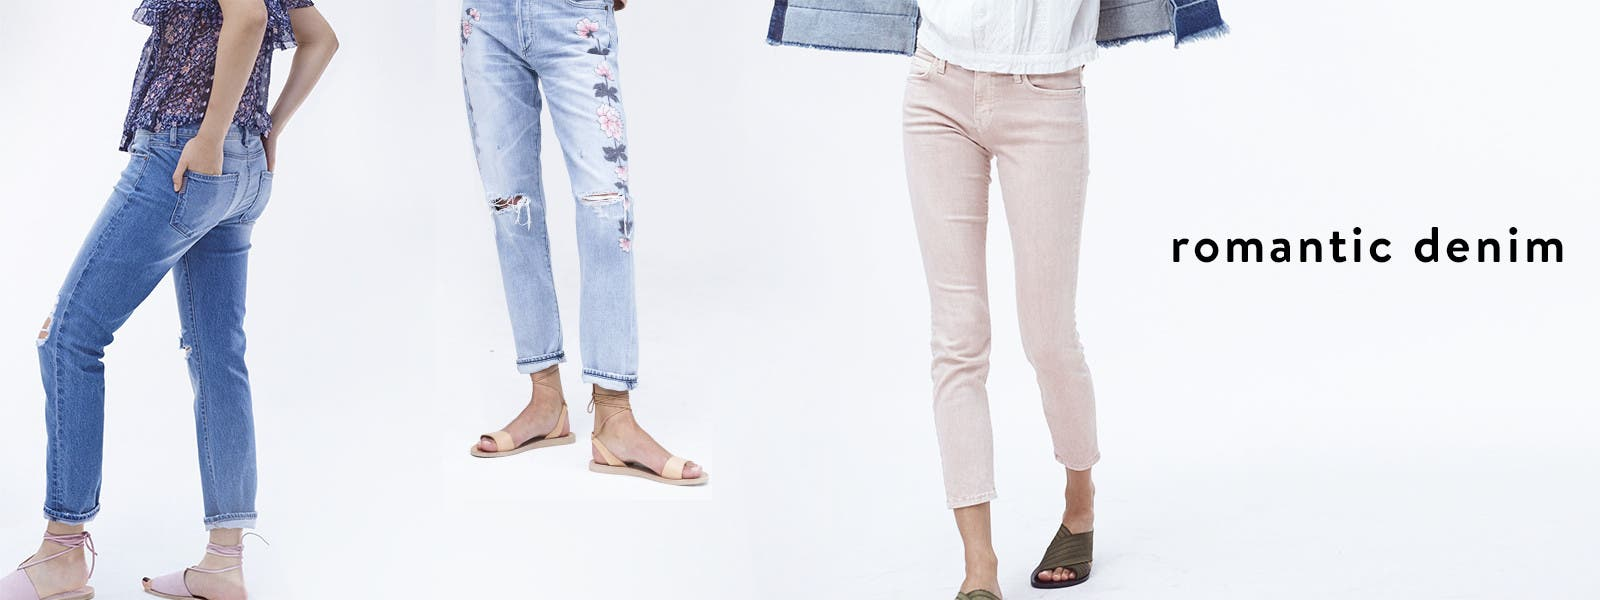 Romantic denim trends for women.